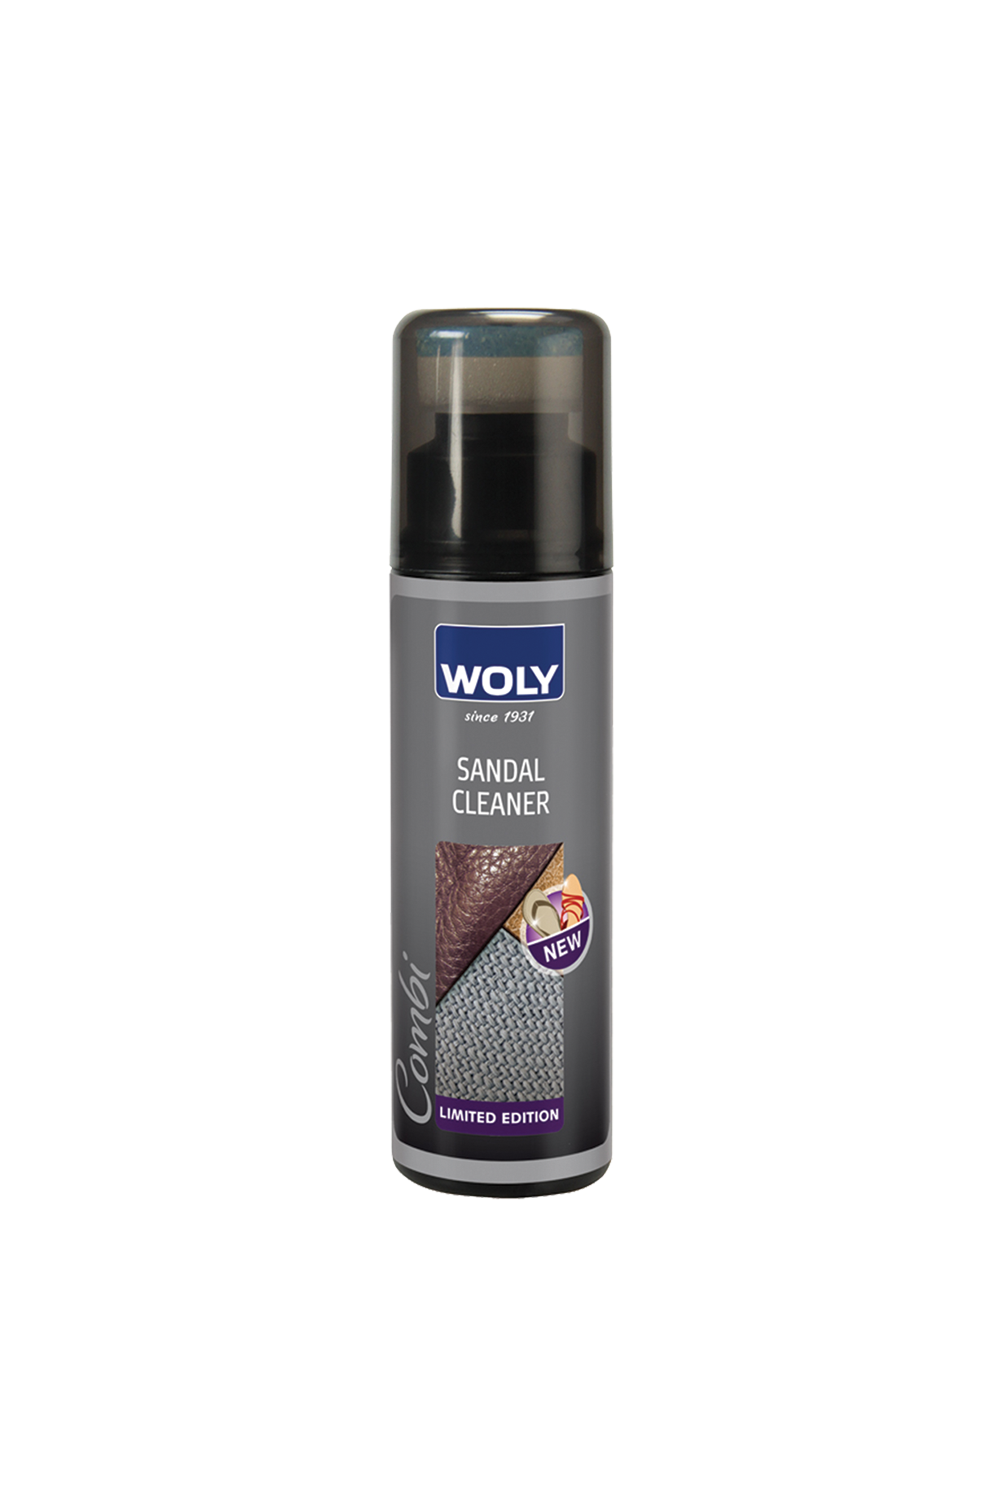 Woly Sandal Cleaner